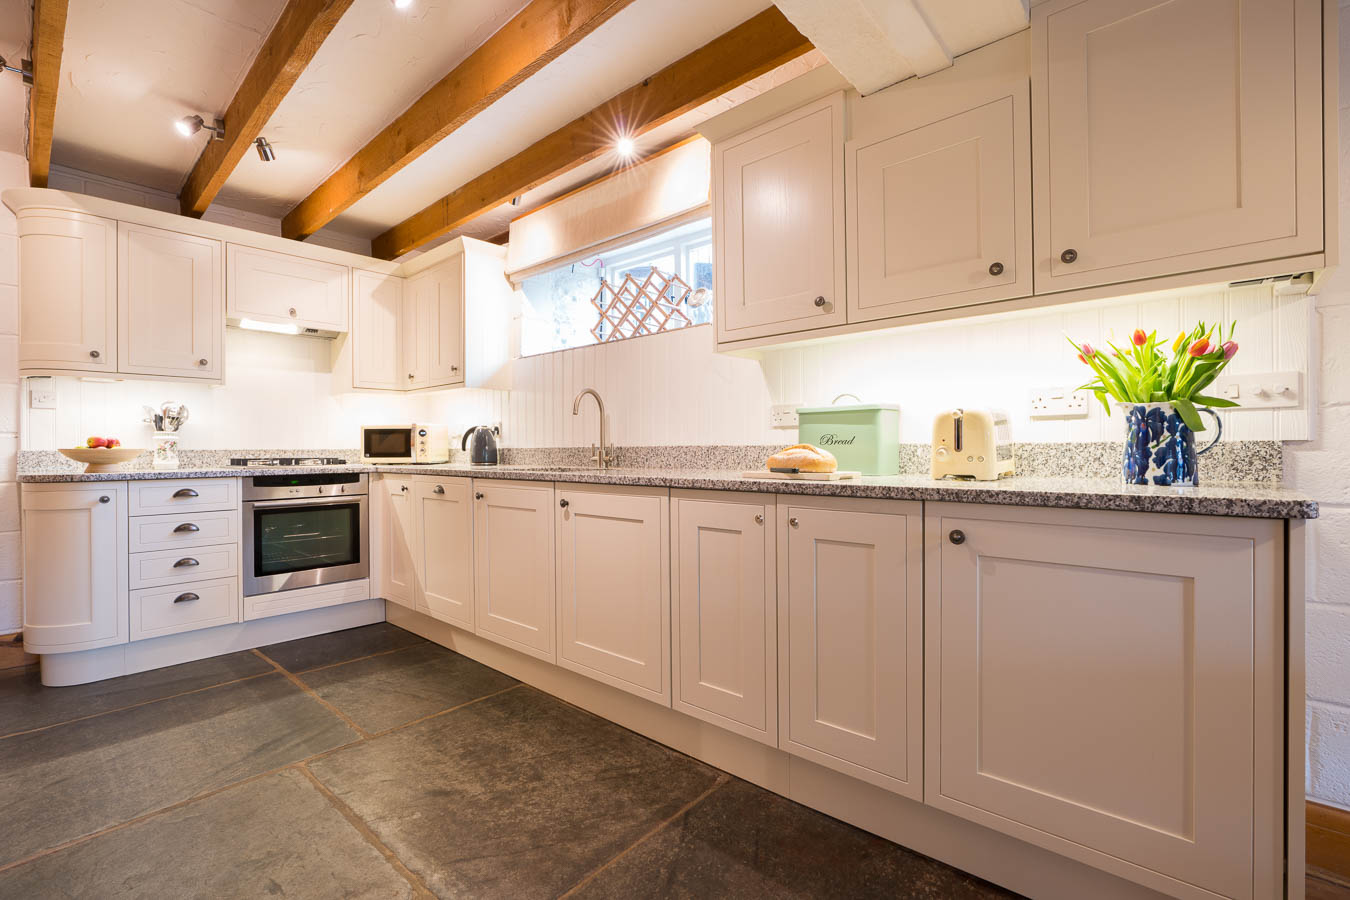 The fresh cream kitchen with granite work tops, Neff oven and original sate floors of Quarry cottage at Flear Farm.